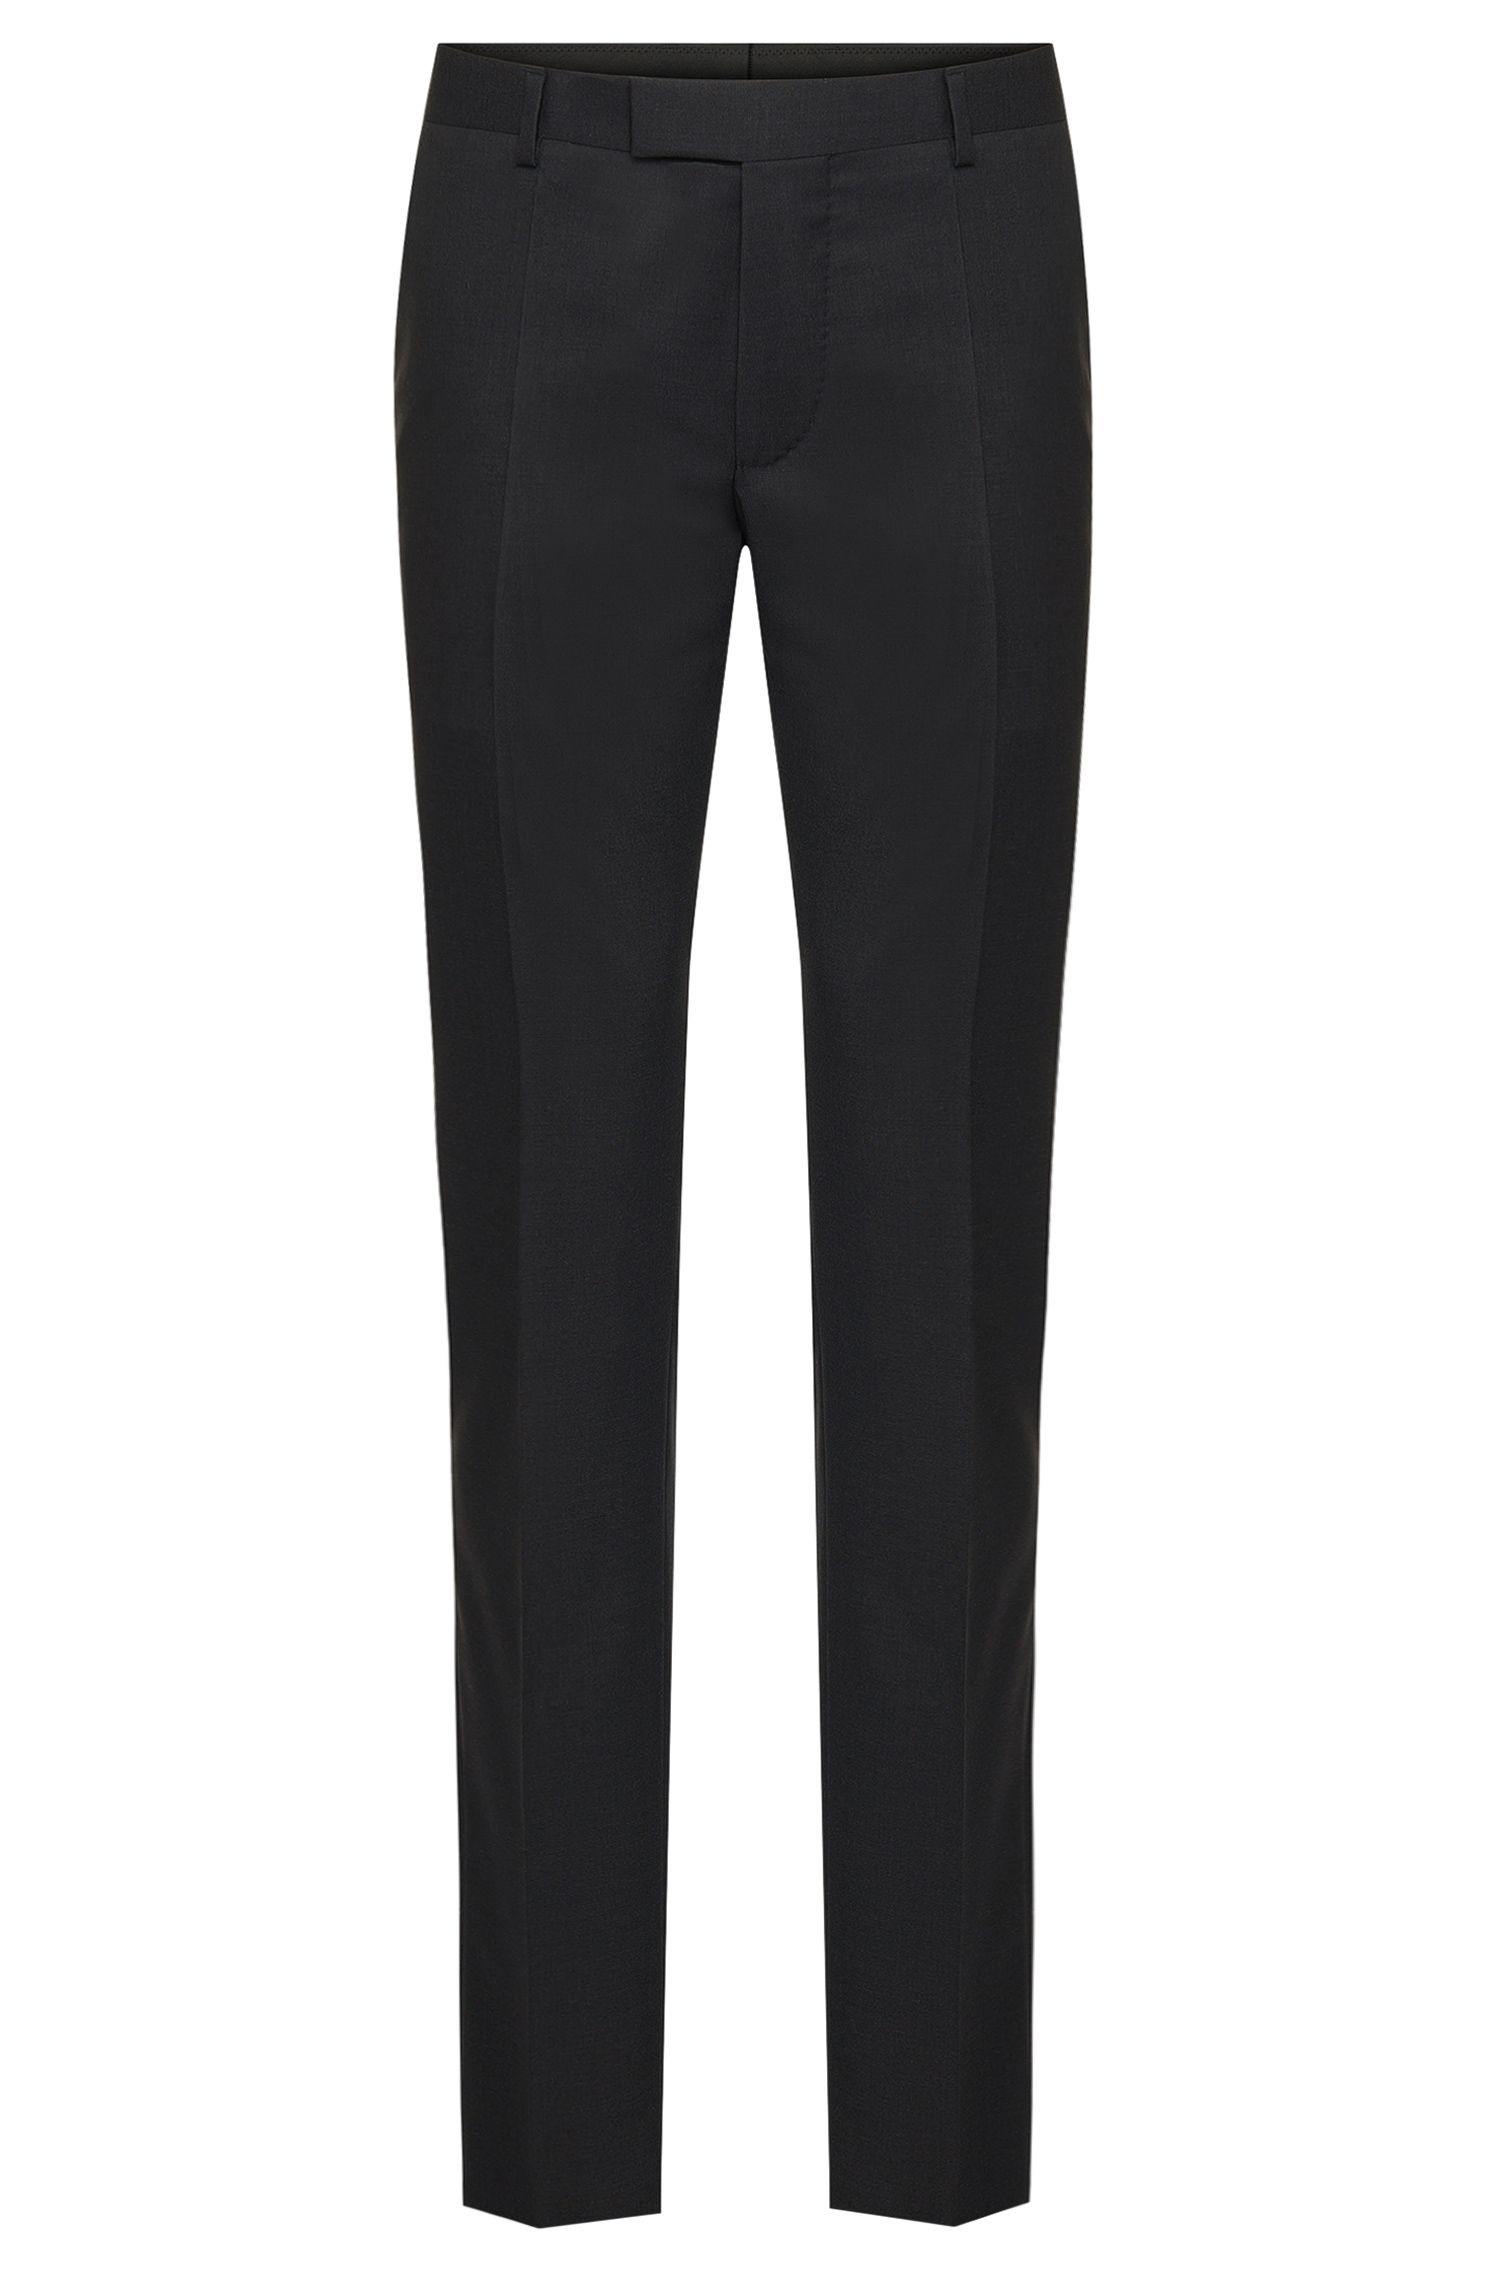 Slim-Fit Tailored Hose aus reiner Schurwolle: 'T-Court5'